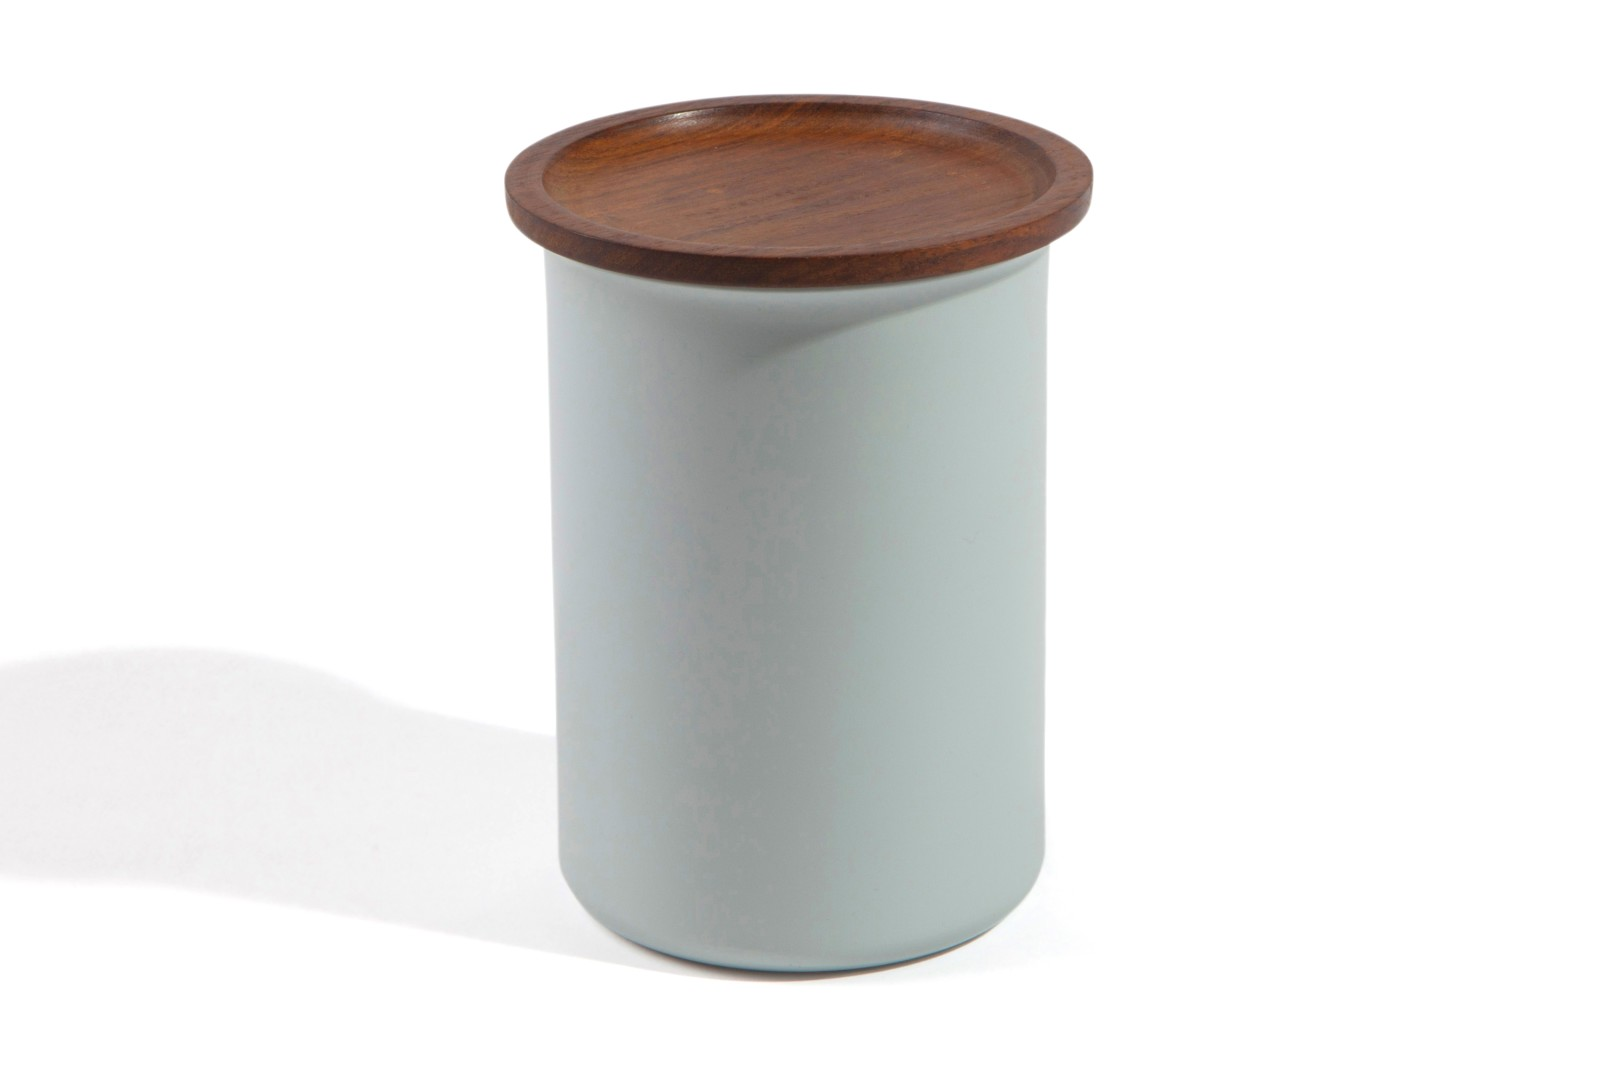 Ayasa Storage Container Grey with Wooden Lid, 0.75L